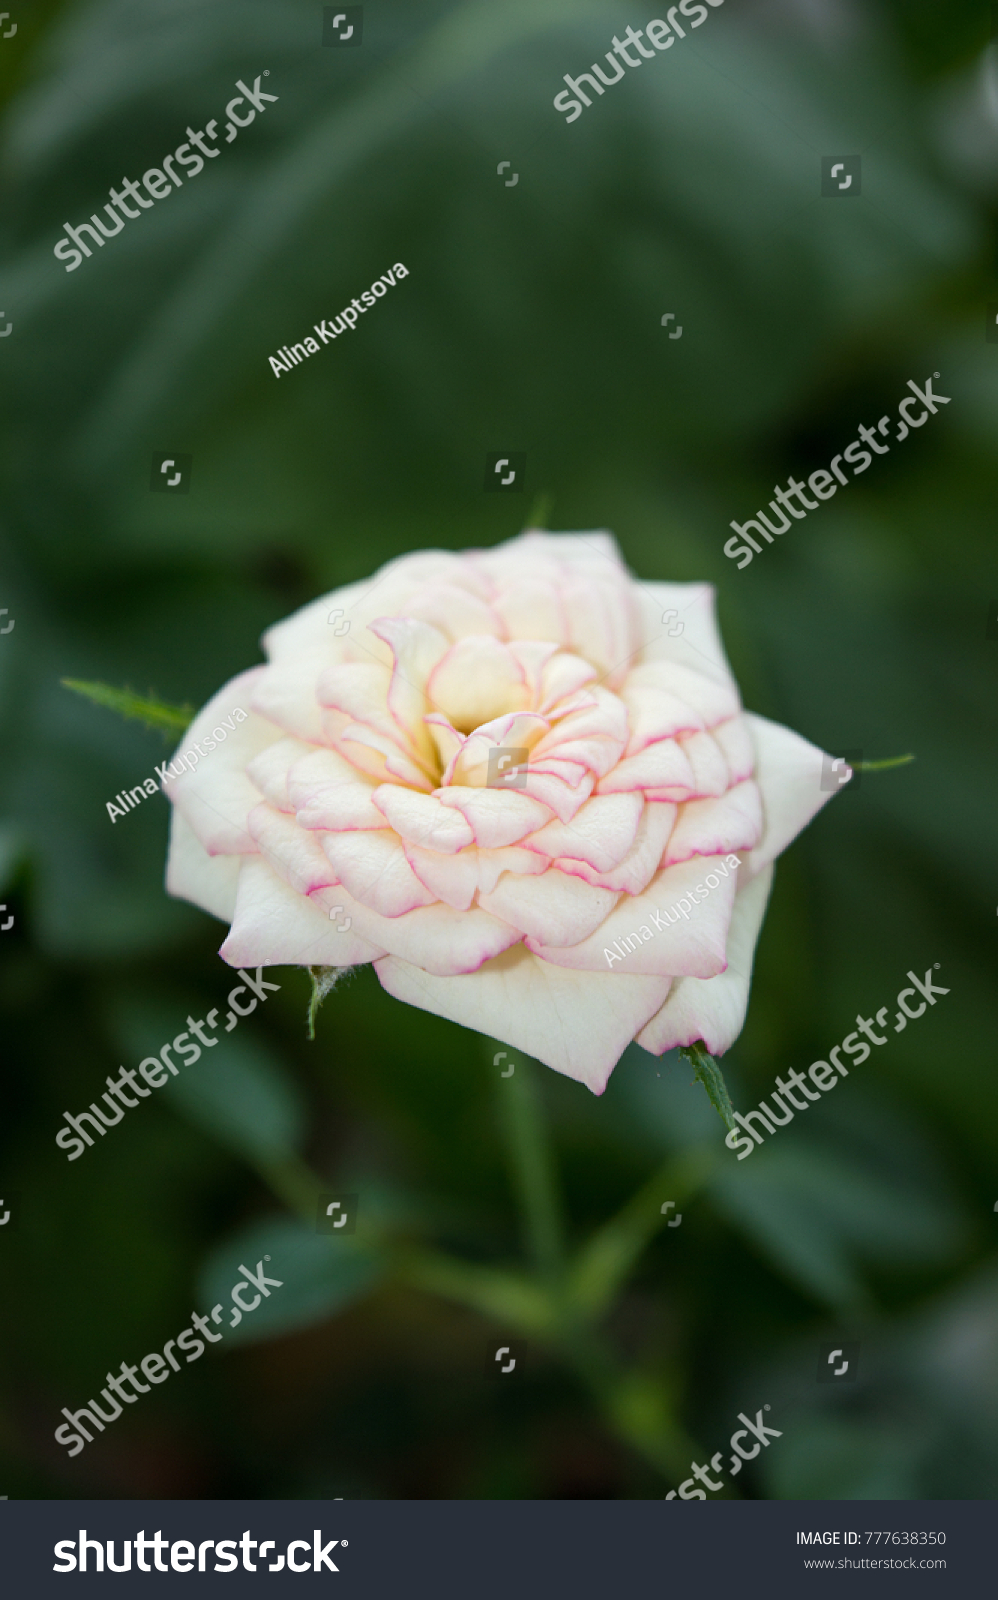 White Rose Flower Pink Edges On Stock Photo Image Royalty Free